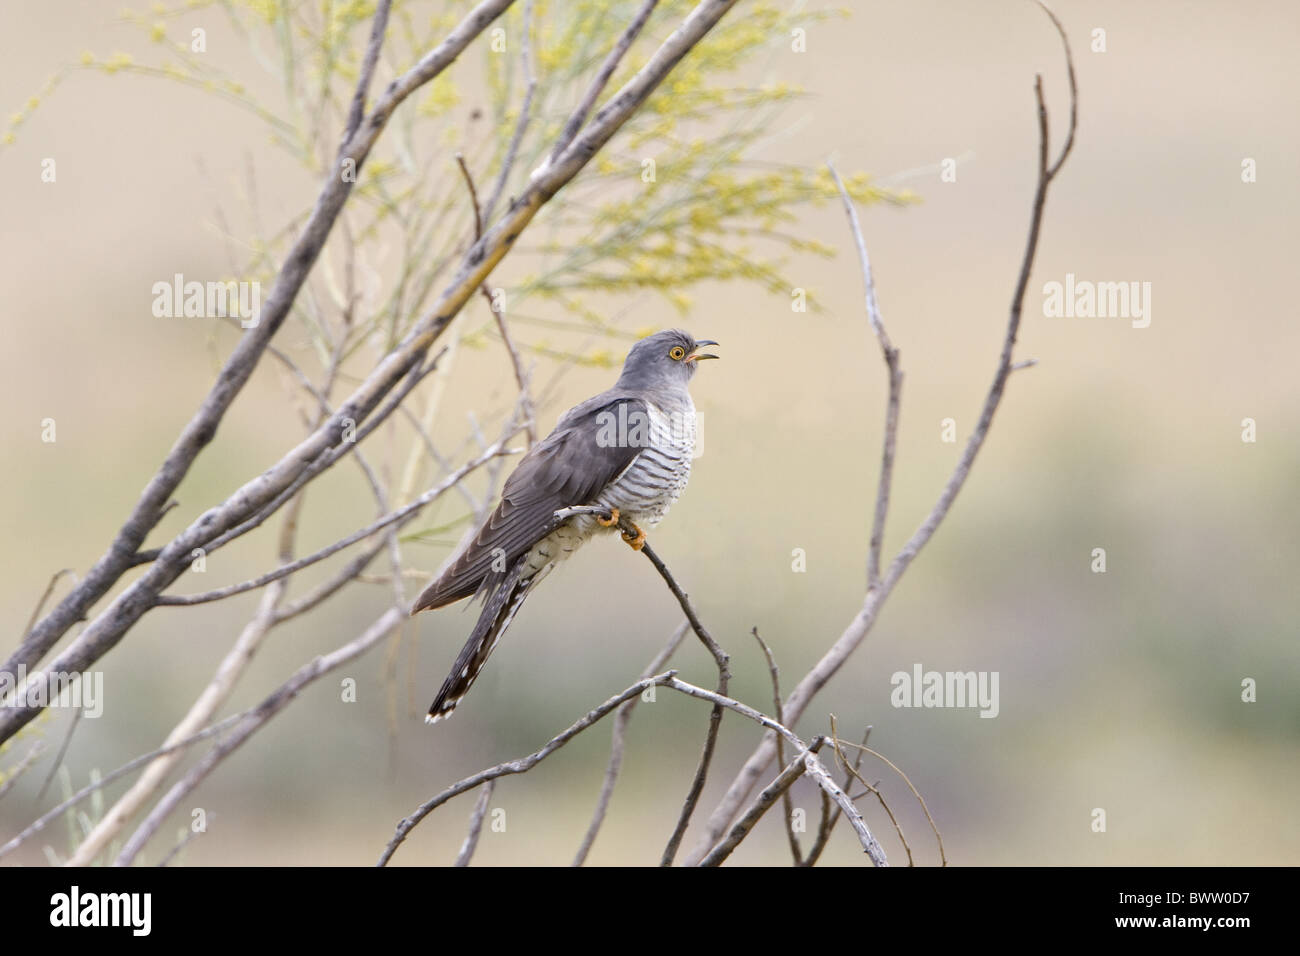 Common Cuckoo (Cuculus canorus) adult male, calling, perched on Broom (Retama sp.) twig, Extremadura, Spain, may - Stock Image